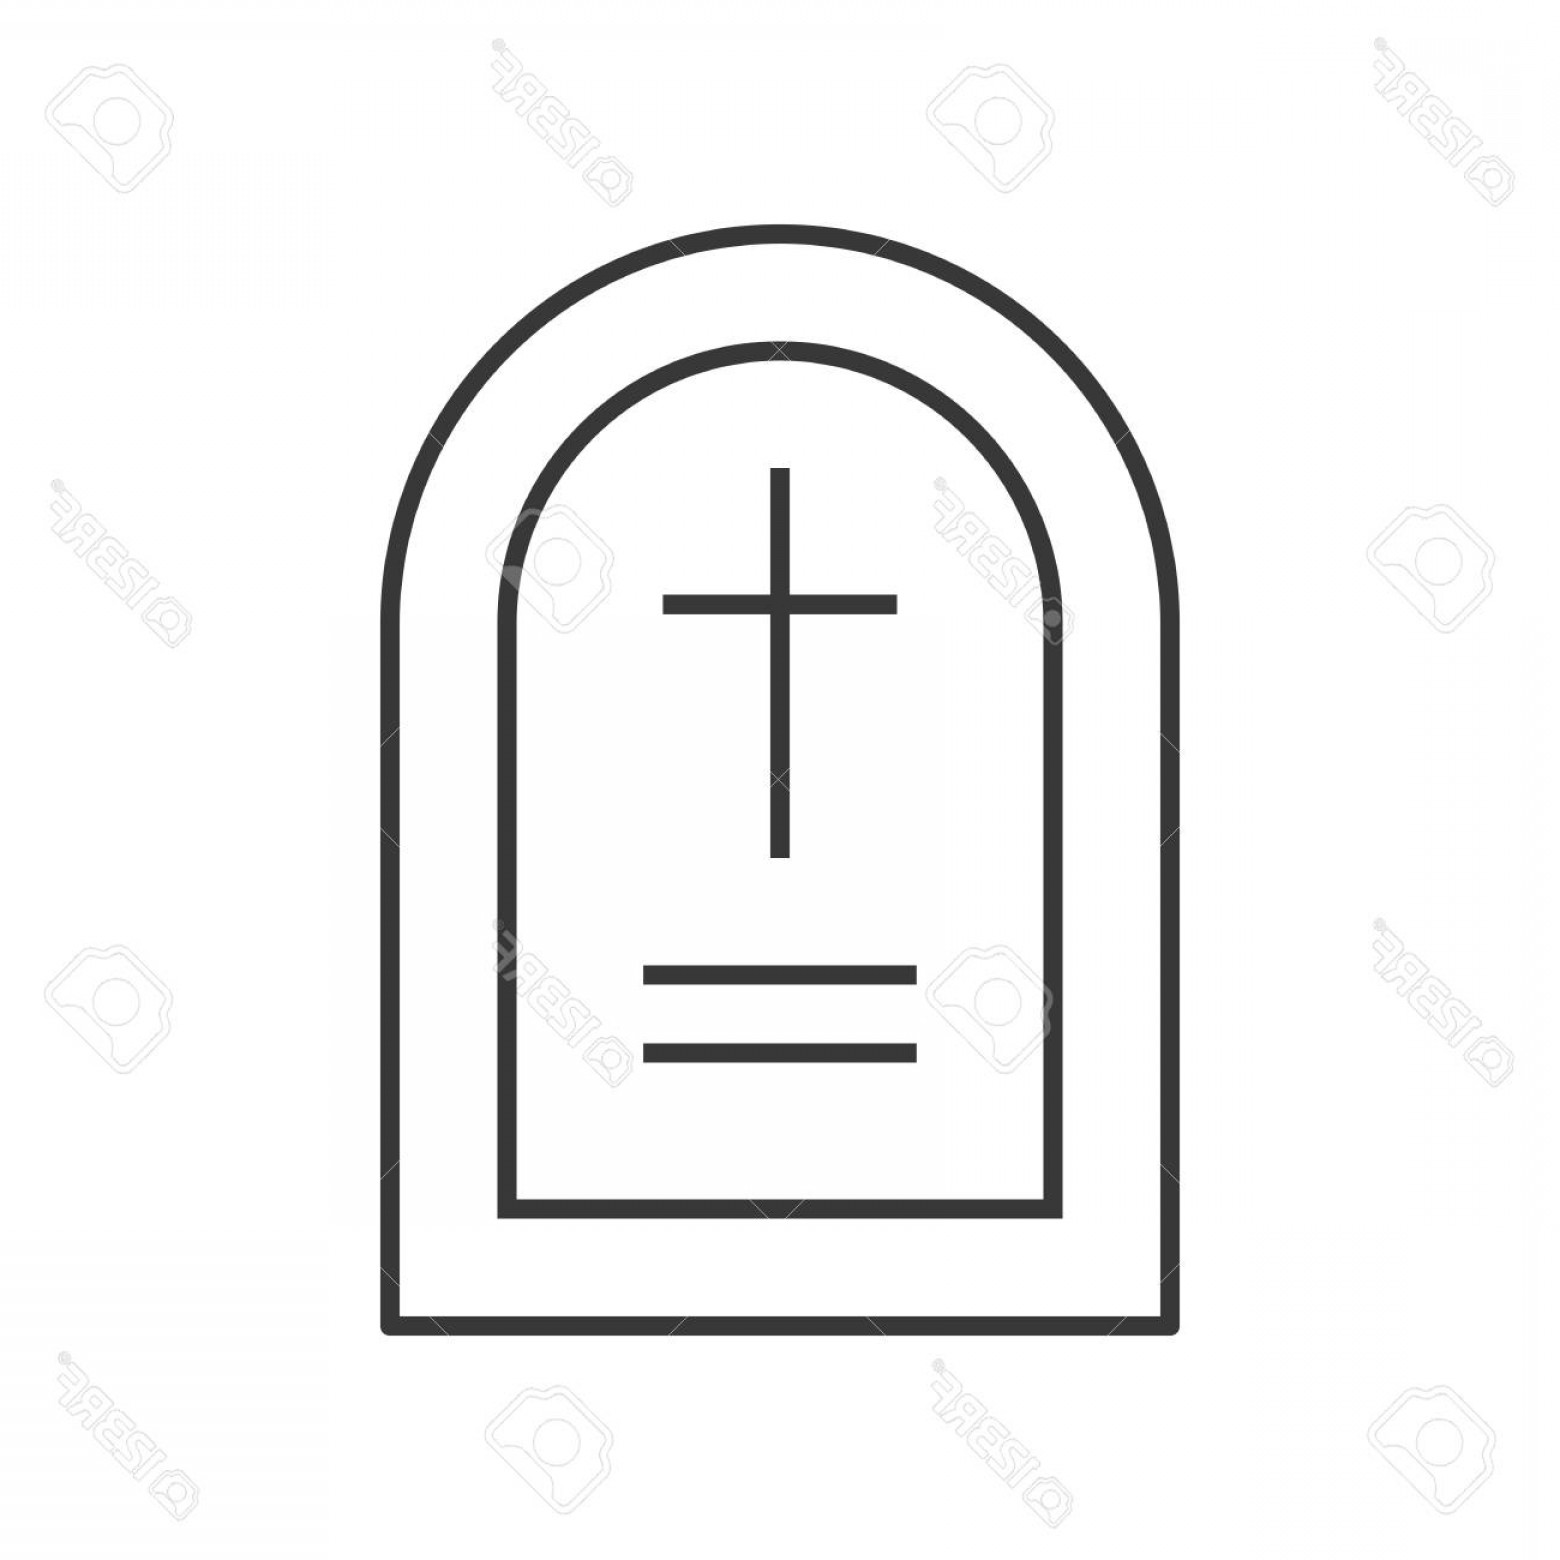 Gravestone Outline Vector: Photostock Vector Gravestone Halloween Related Hollow Outline Icon Editable Stroke